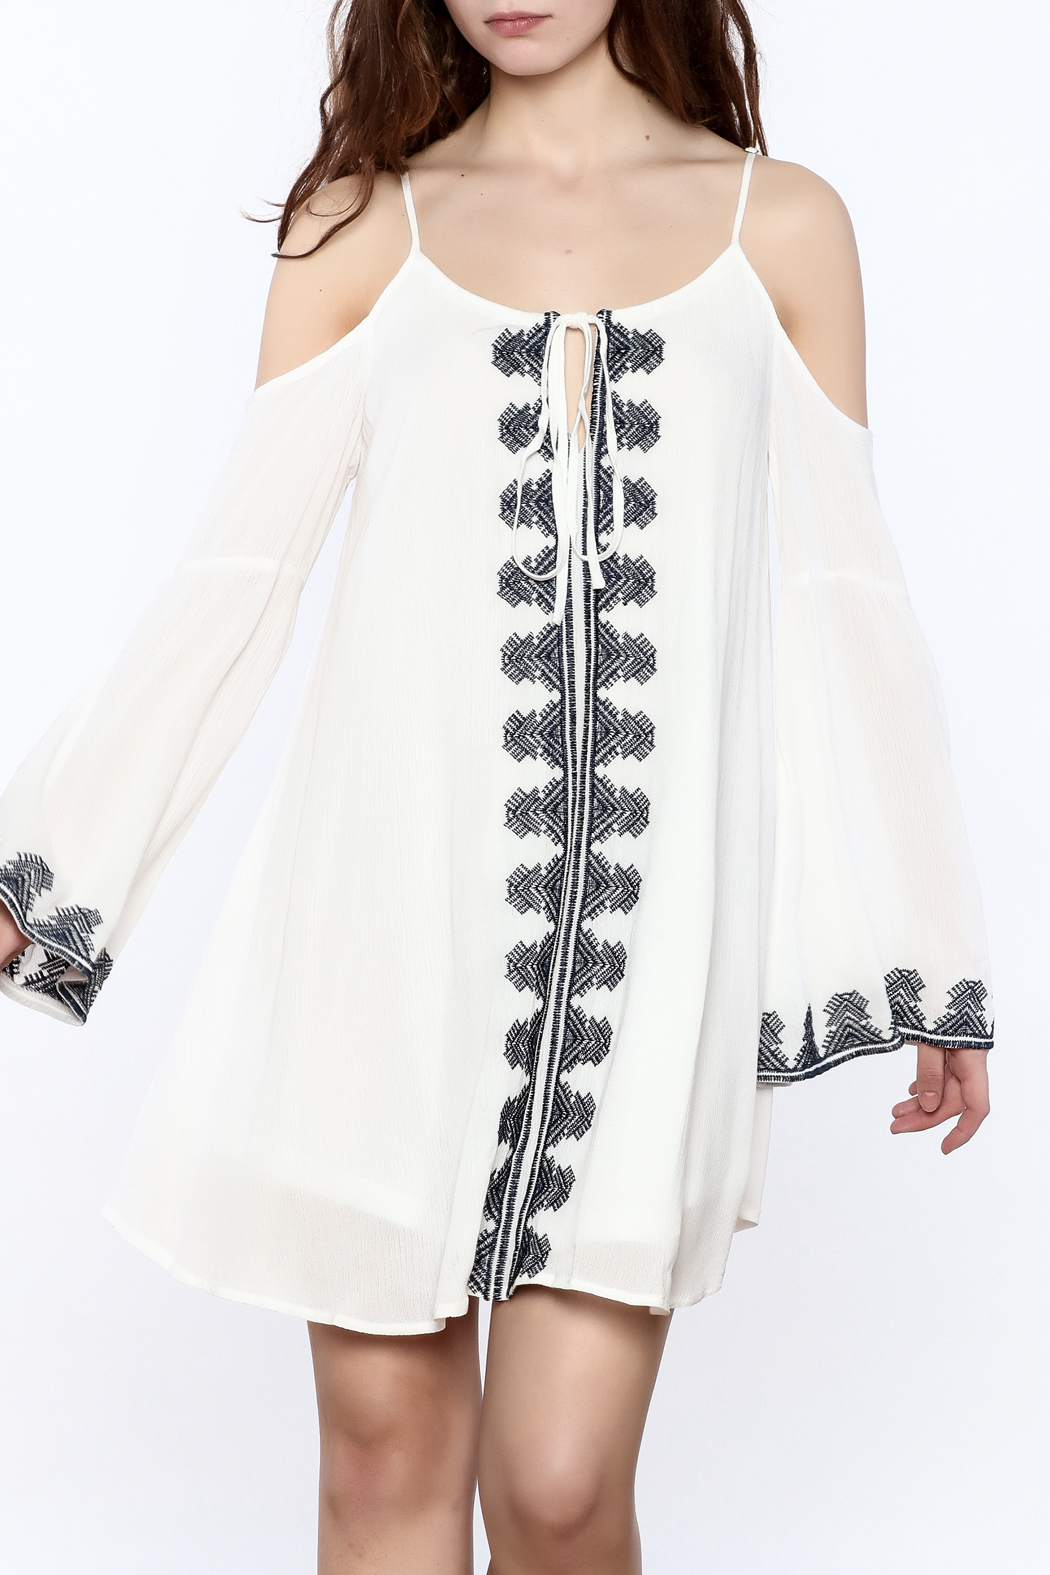 Very J Embroidered Loose Dress - Main Image